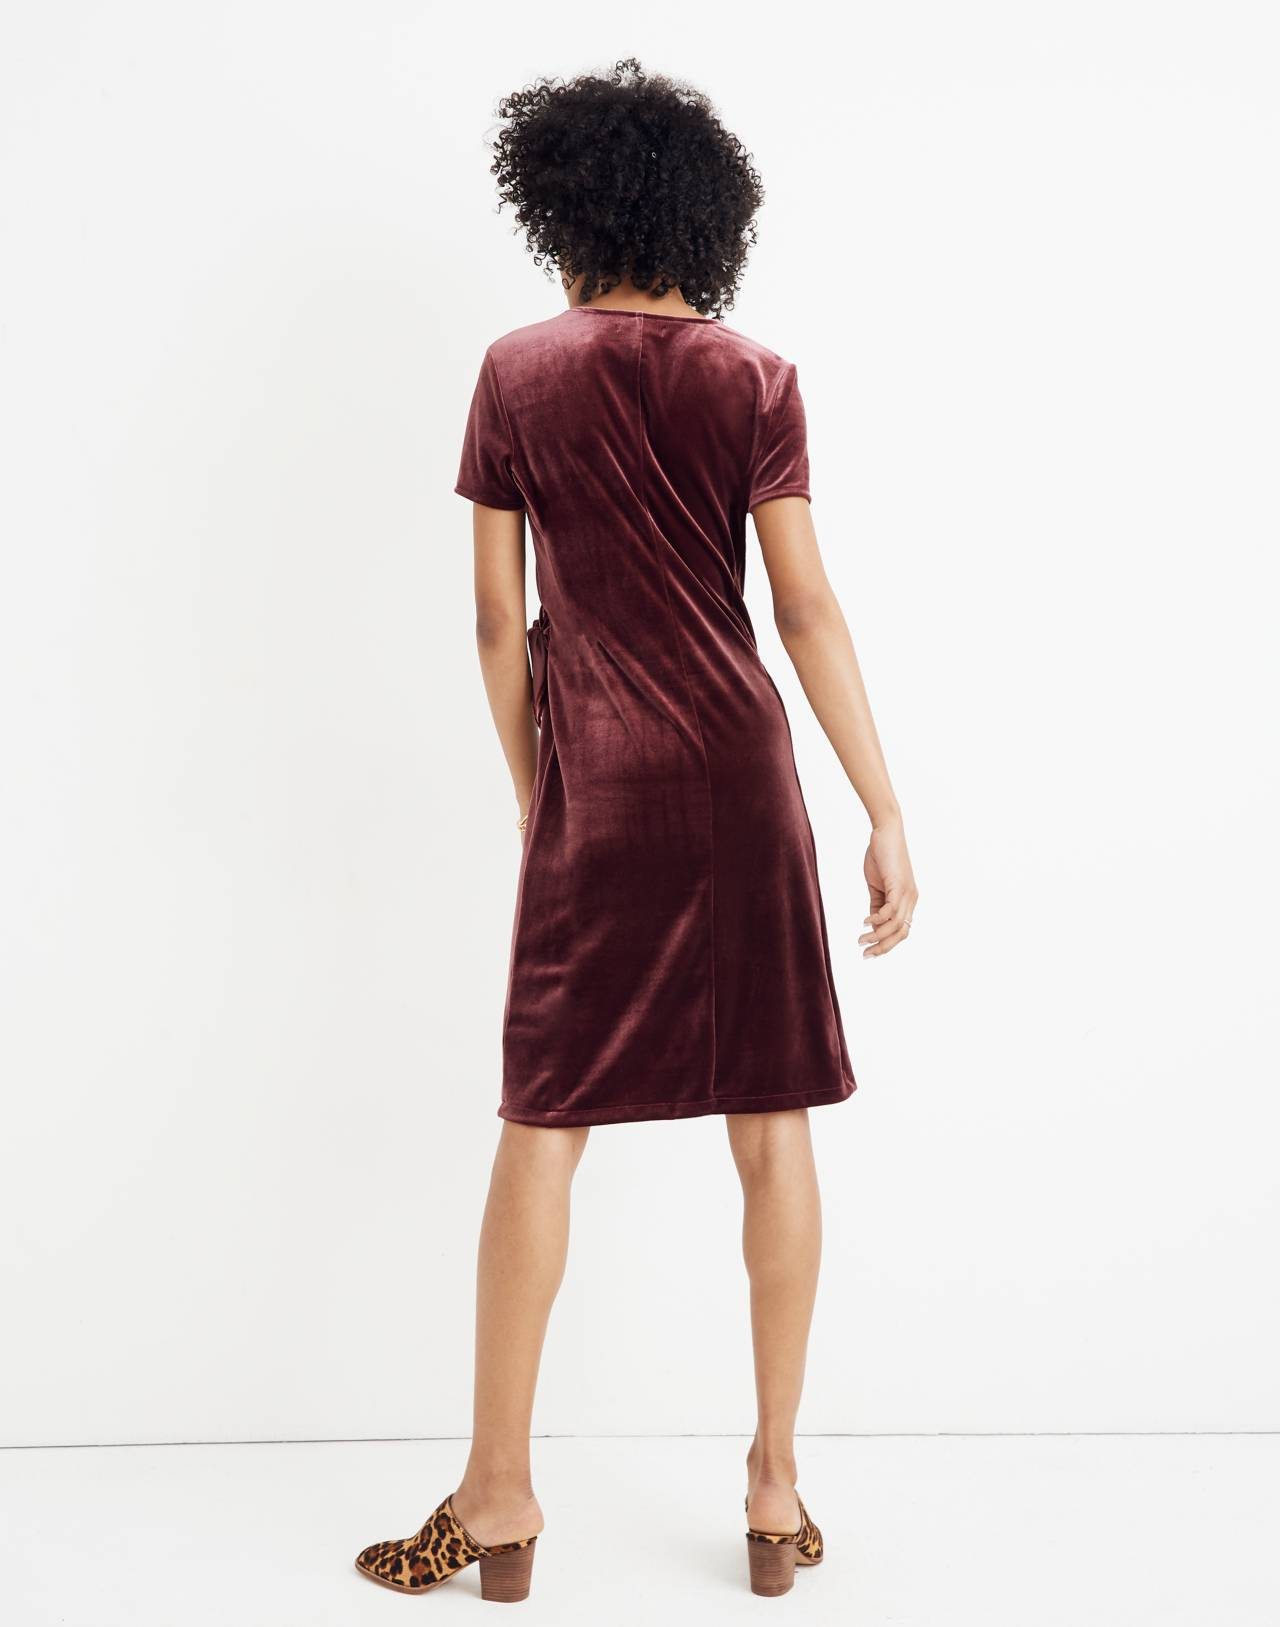 Velvet Side-Tie Dress in pinot noir image 3